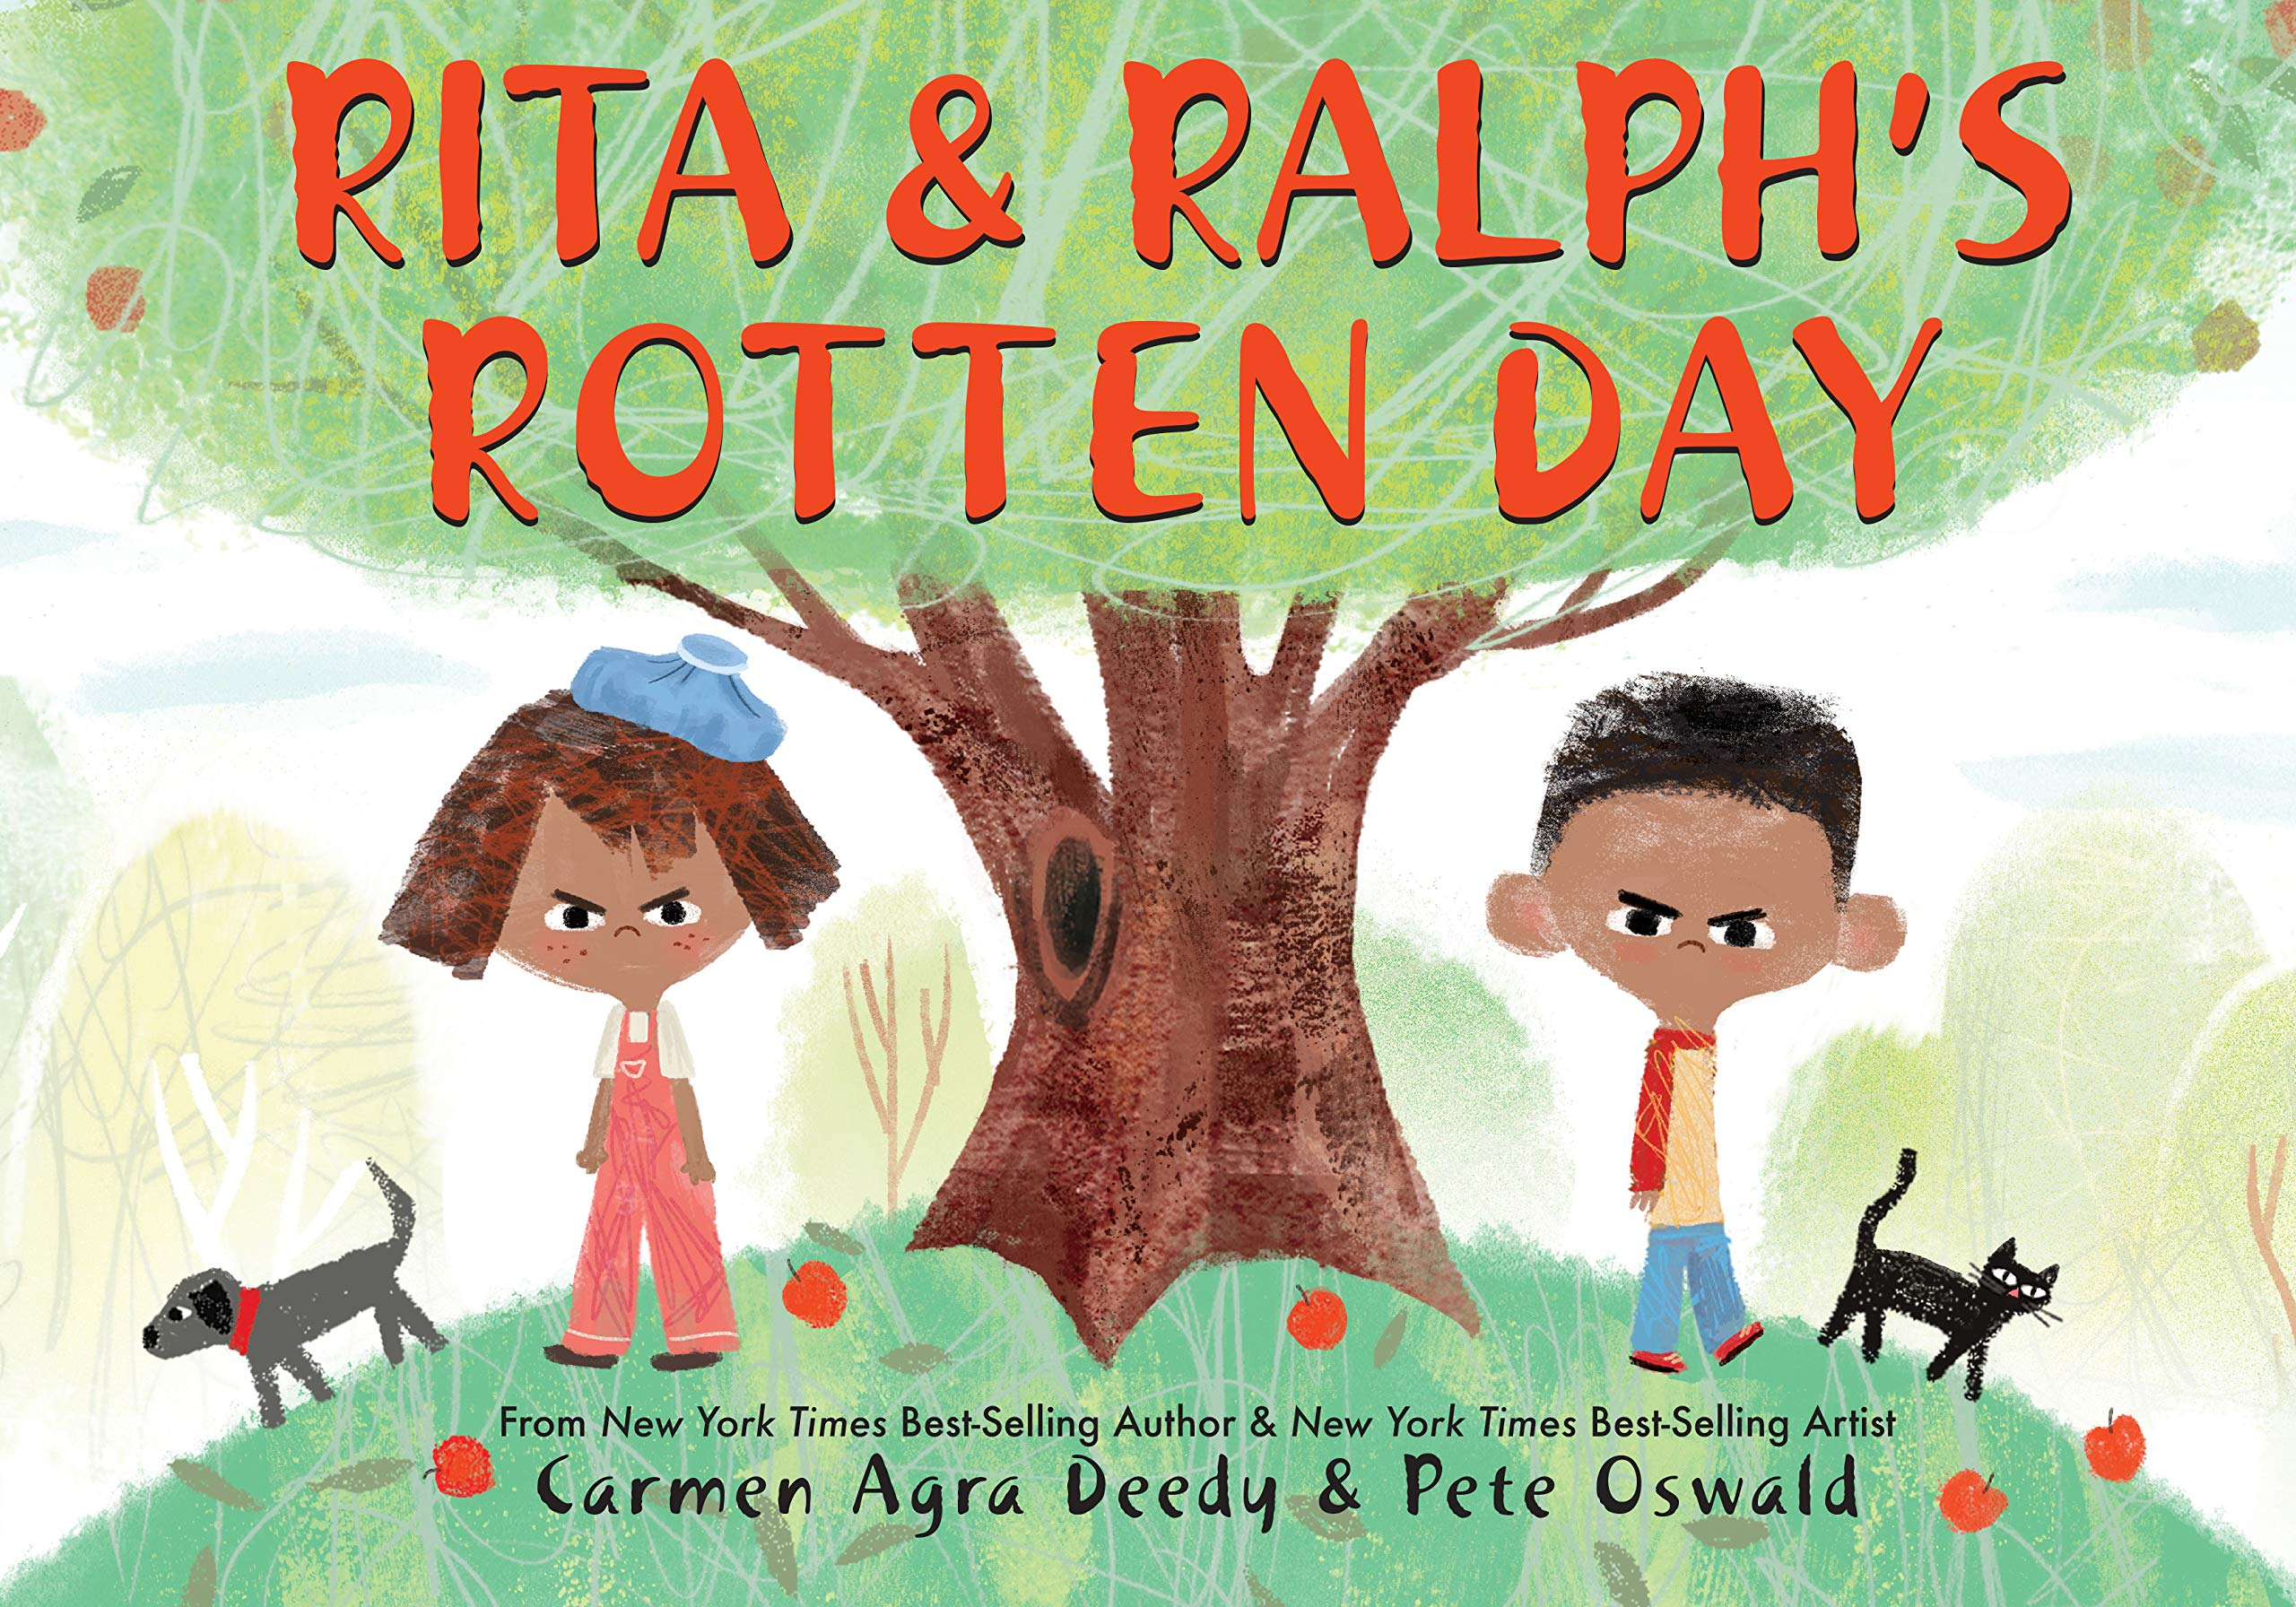 New York Times Best Sellers March 2020 Rita and Ralph's Rotten Day: Carmen Agra Deedy, Pete Oswald